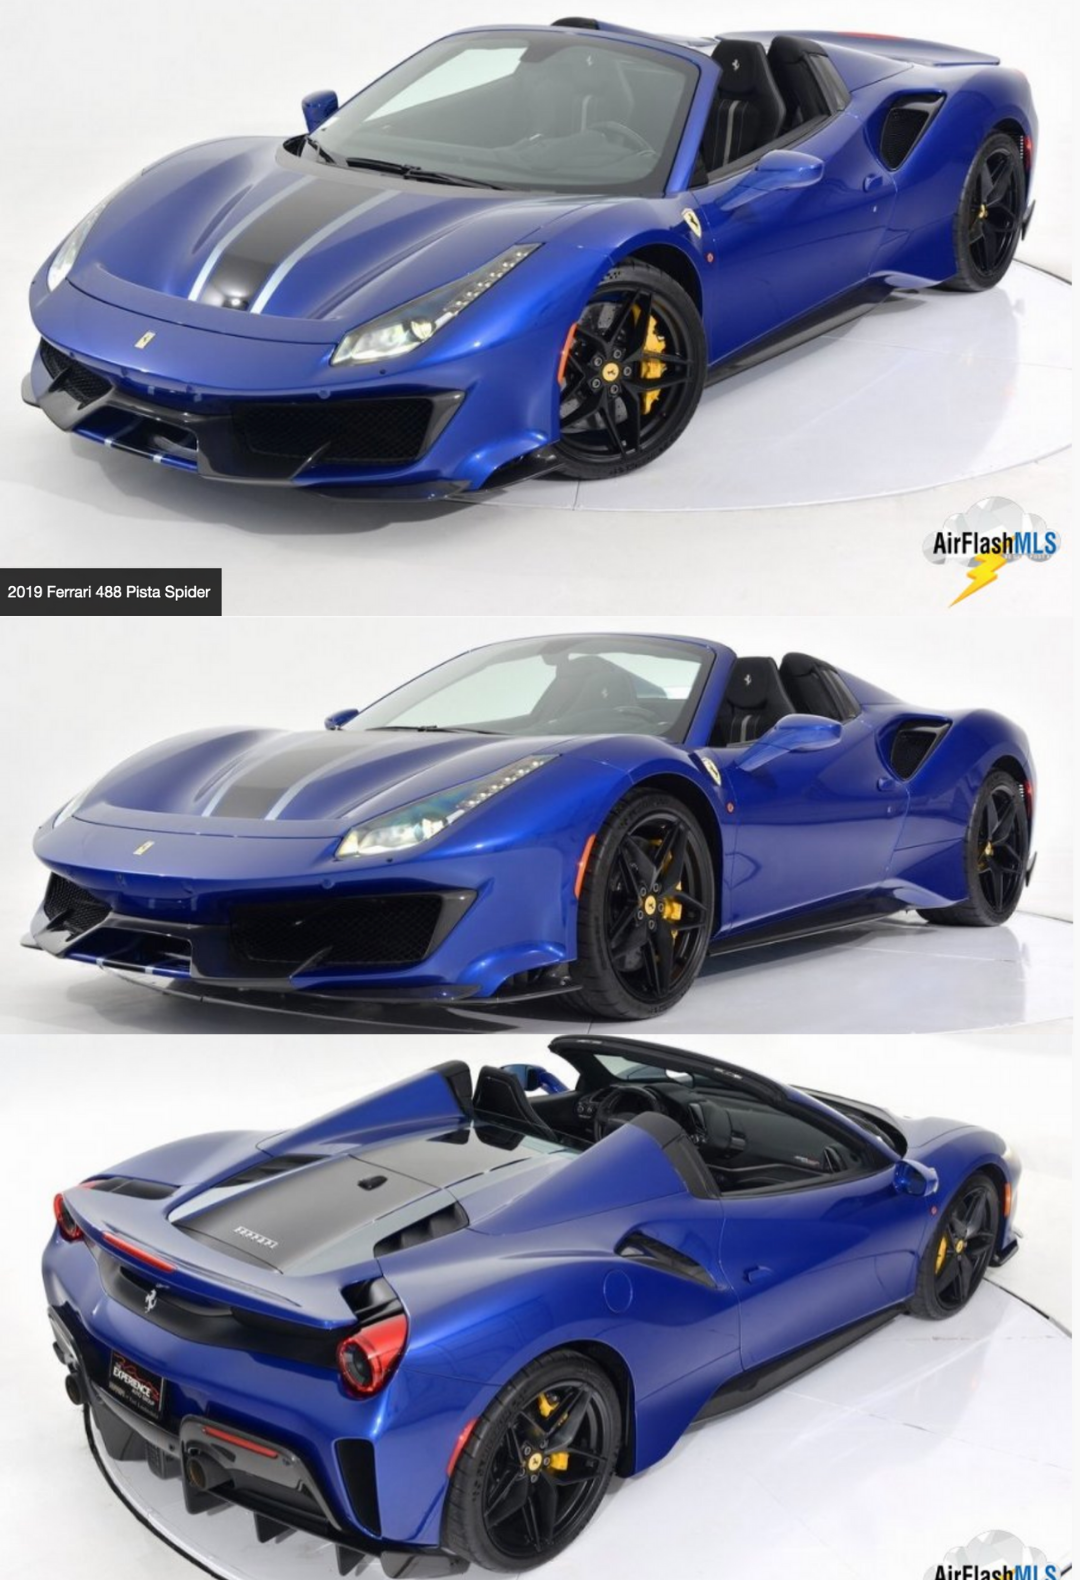 2019 Ferrari 488 Pista Spider In 2020 Ferrari 488 Ferrari Ferrari For Sale